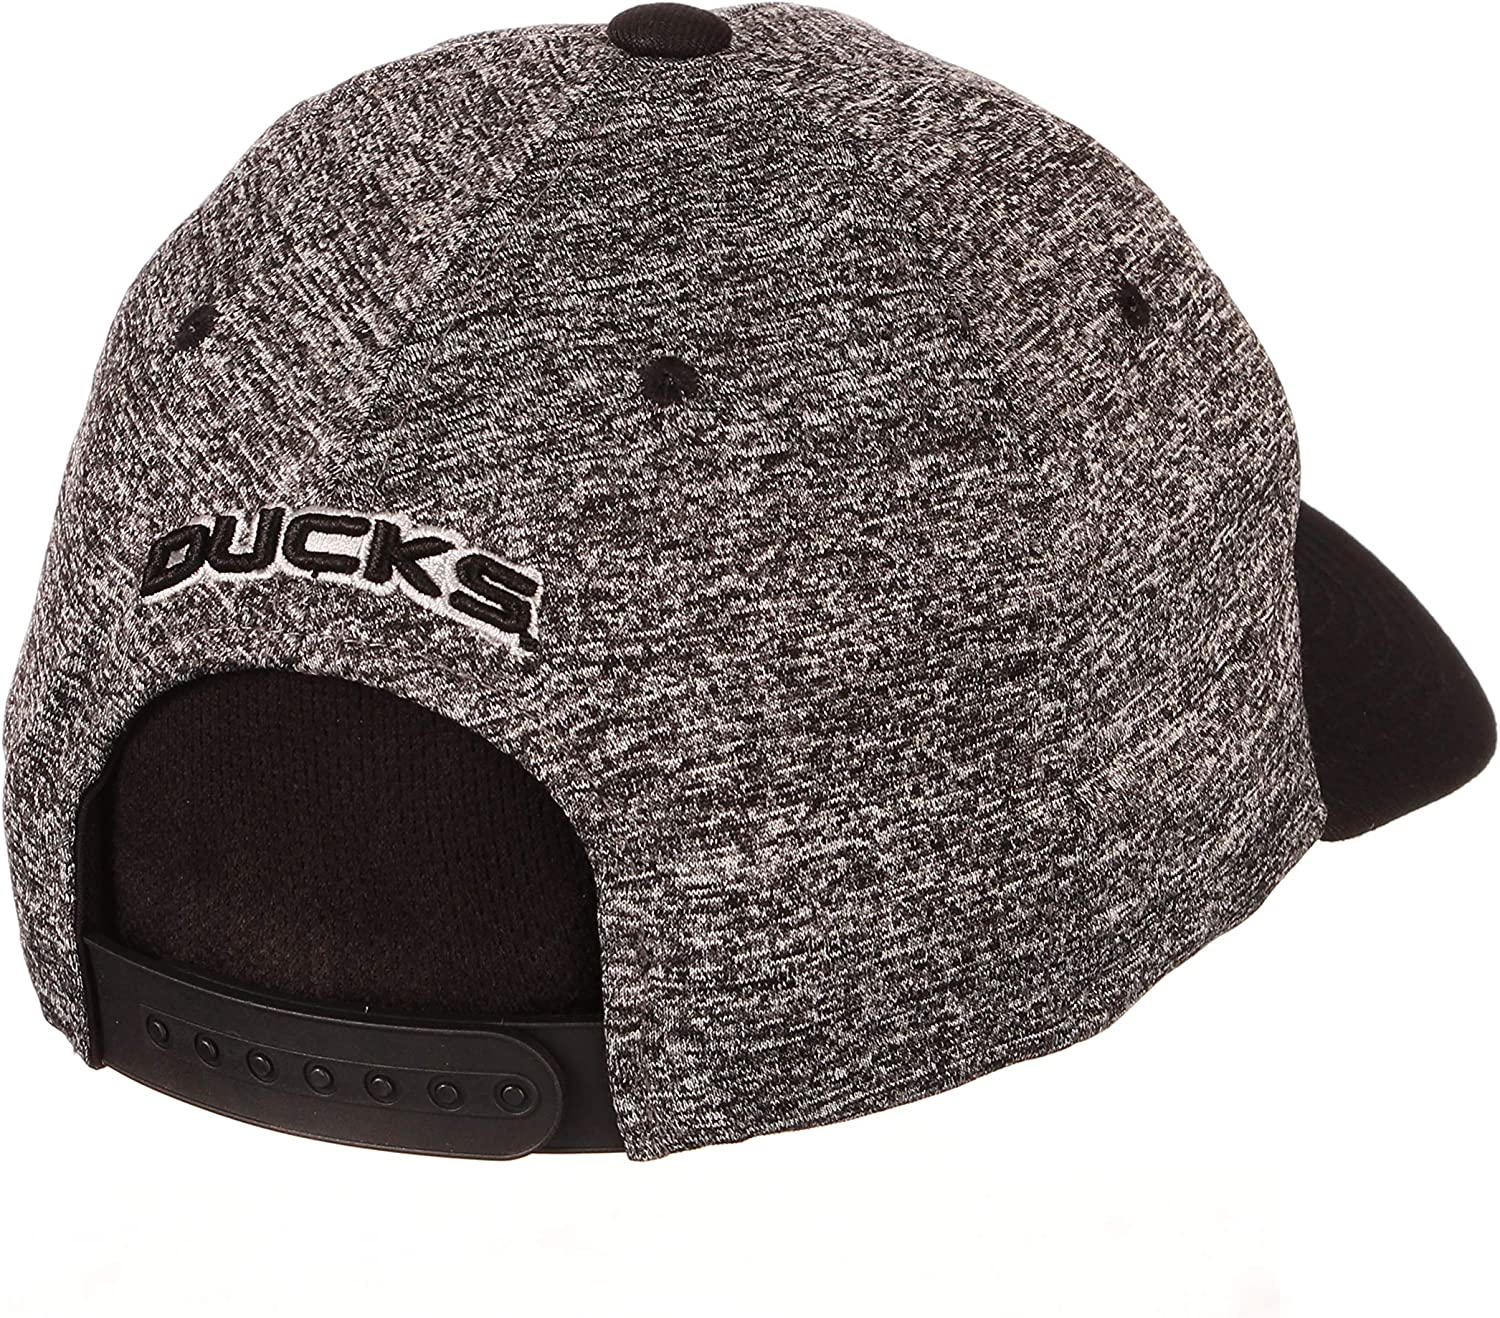 Charcoal//Black Small NCAA Zephyr Iowa Hawkeyes Mens Interference Z-Fit Hat